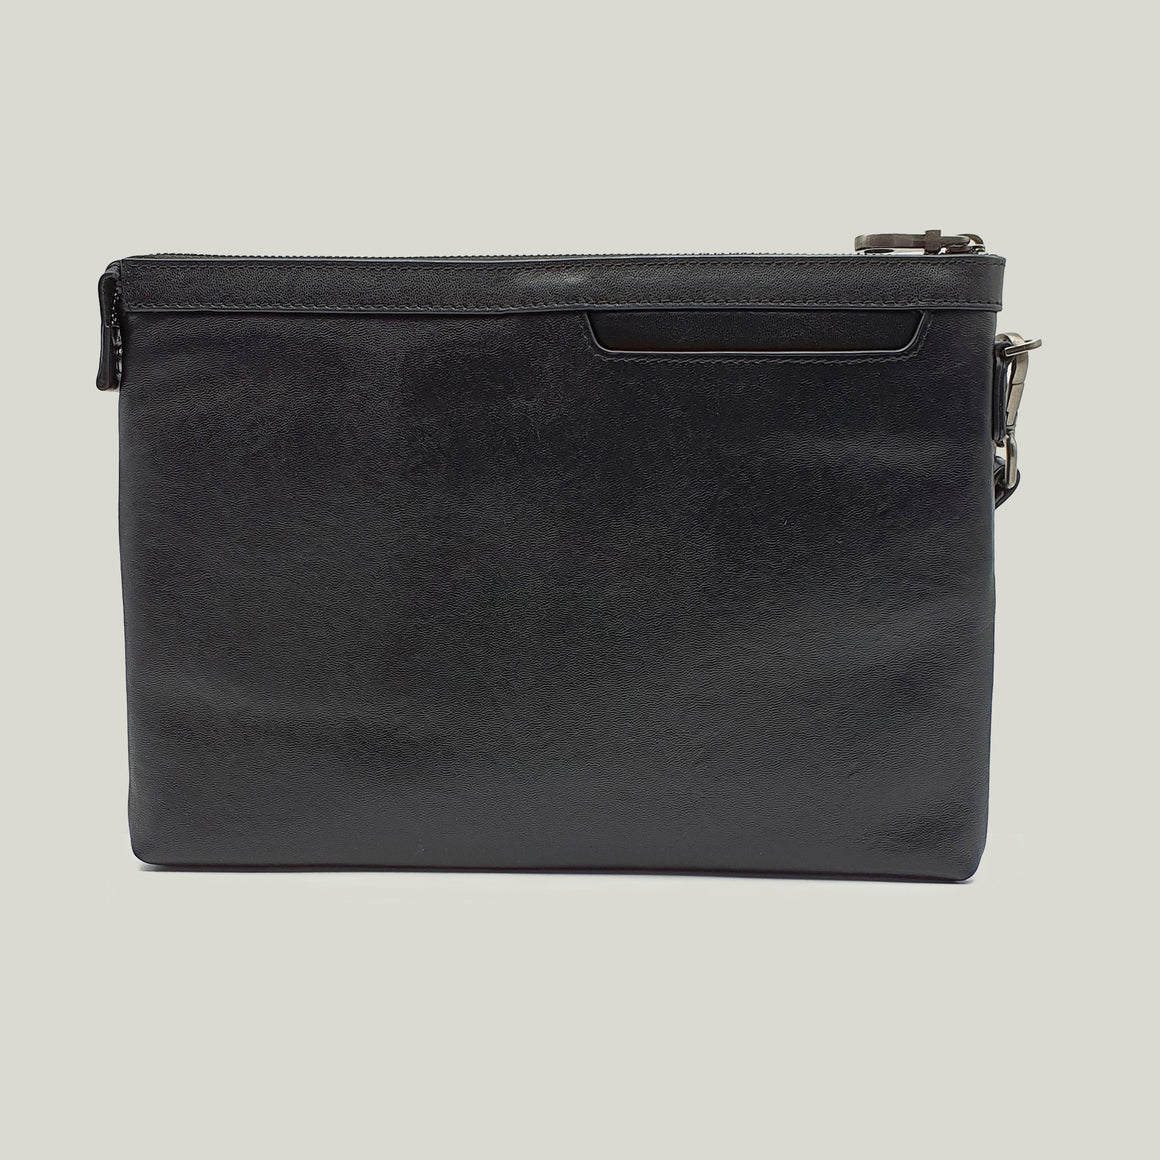 Ipad pouch leather, Series-Five Black - Dminimis